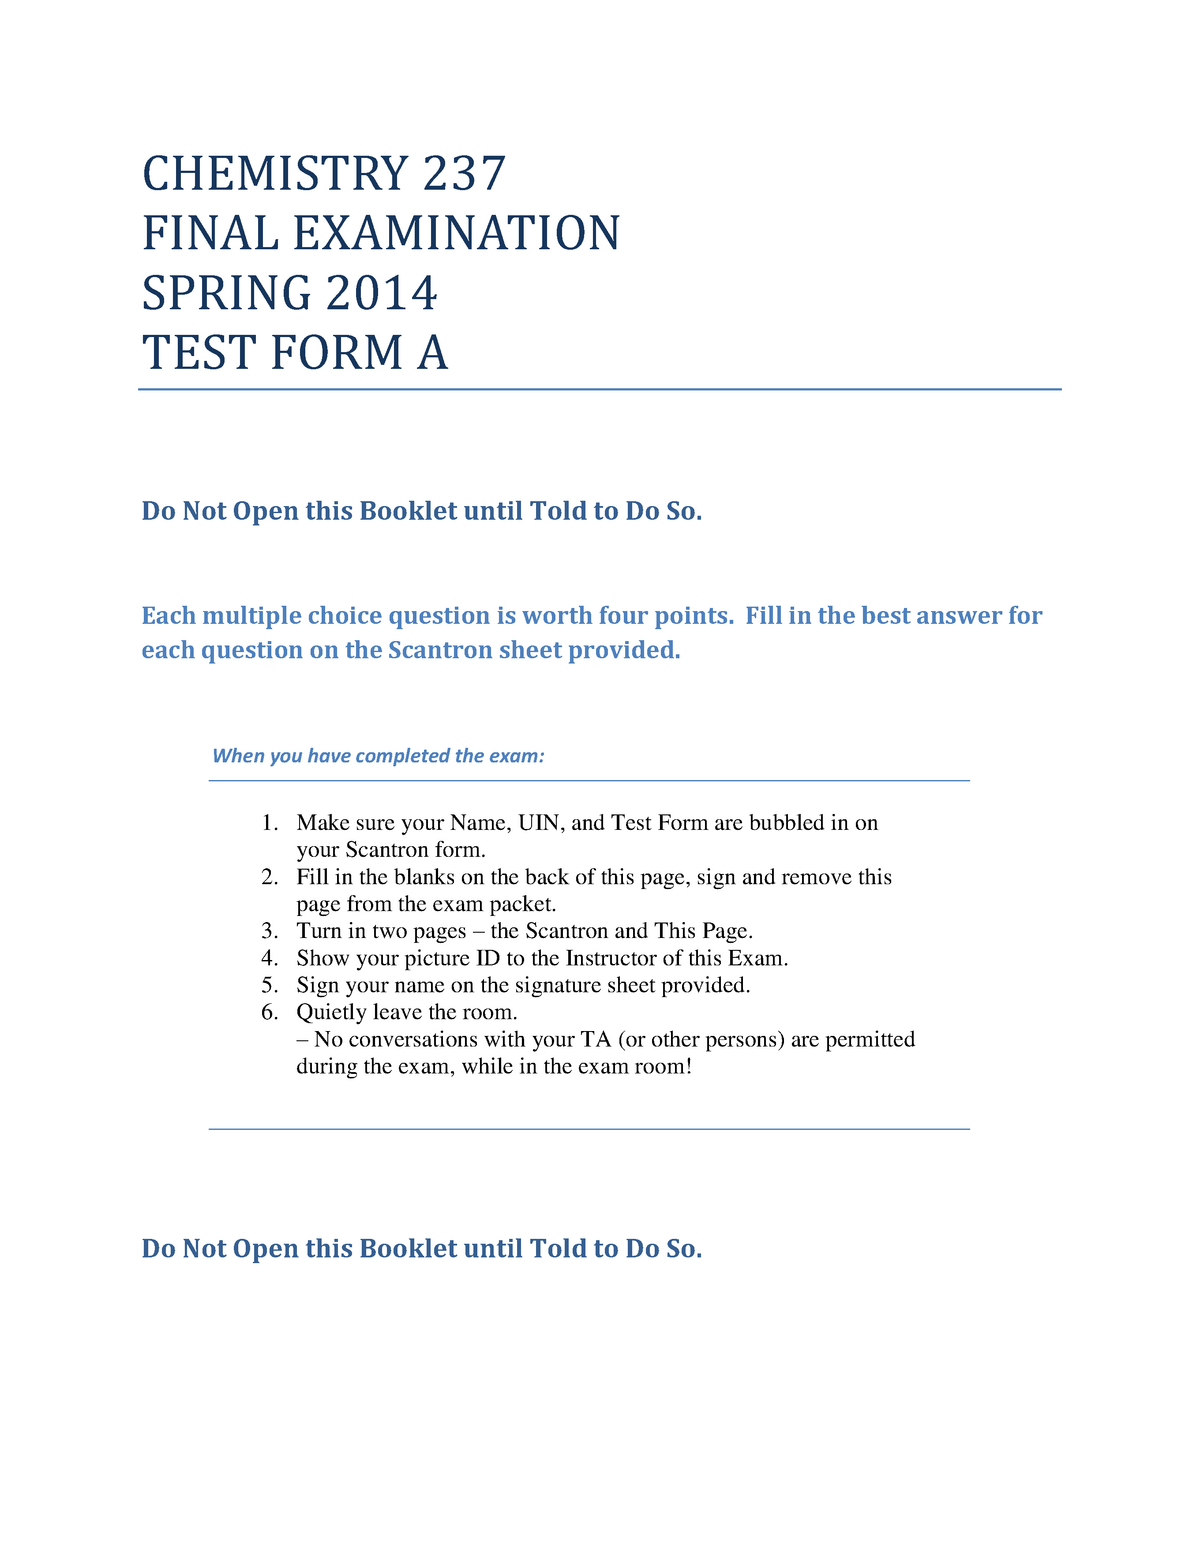 Organic Chemistry Laboratory Final Exam Spring 2014 Test Form A